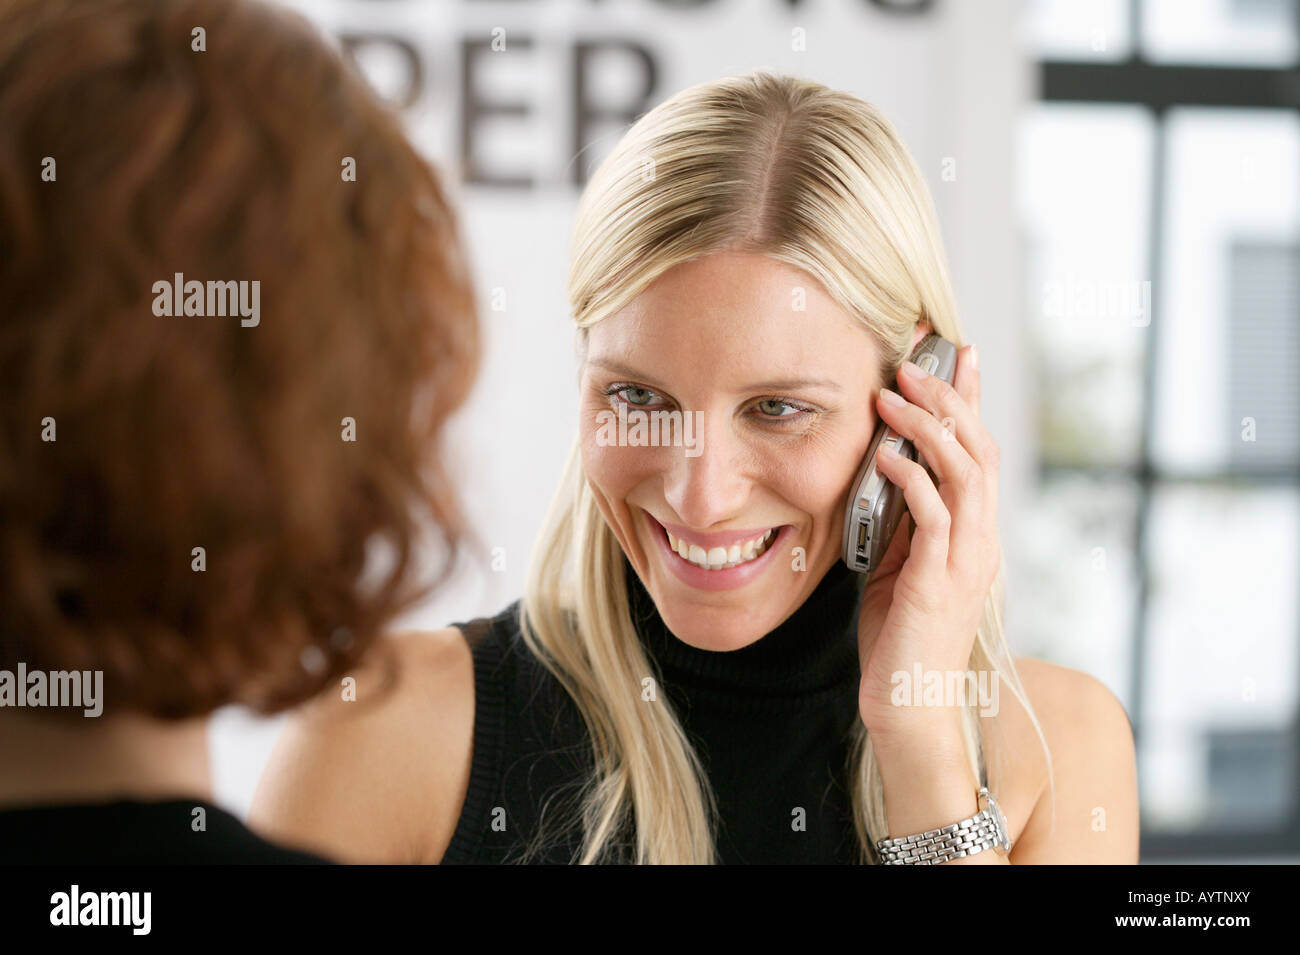 Two young women vis-à-vis, one woman phoning with a mobile phone - Stock Image